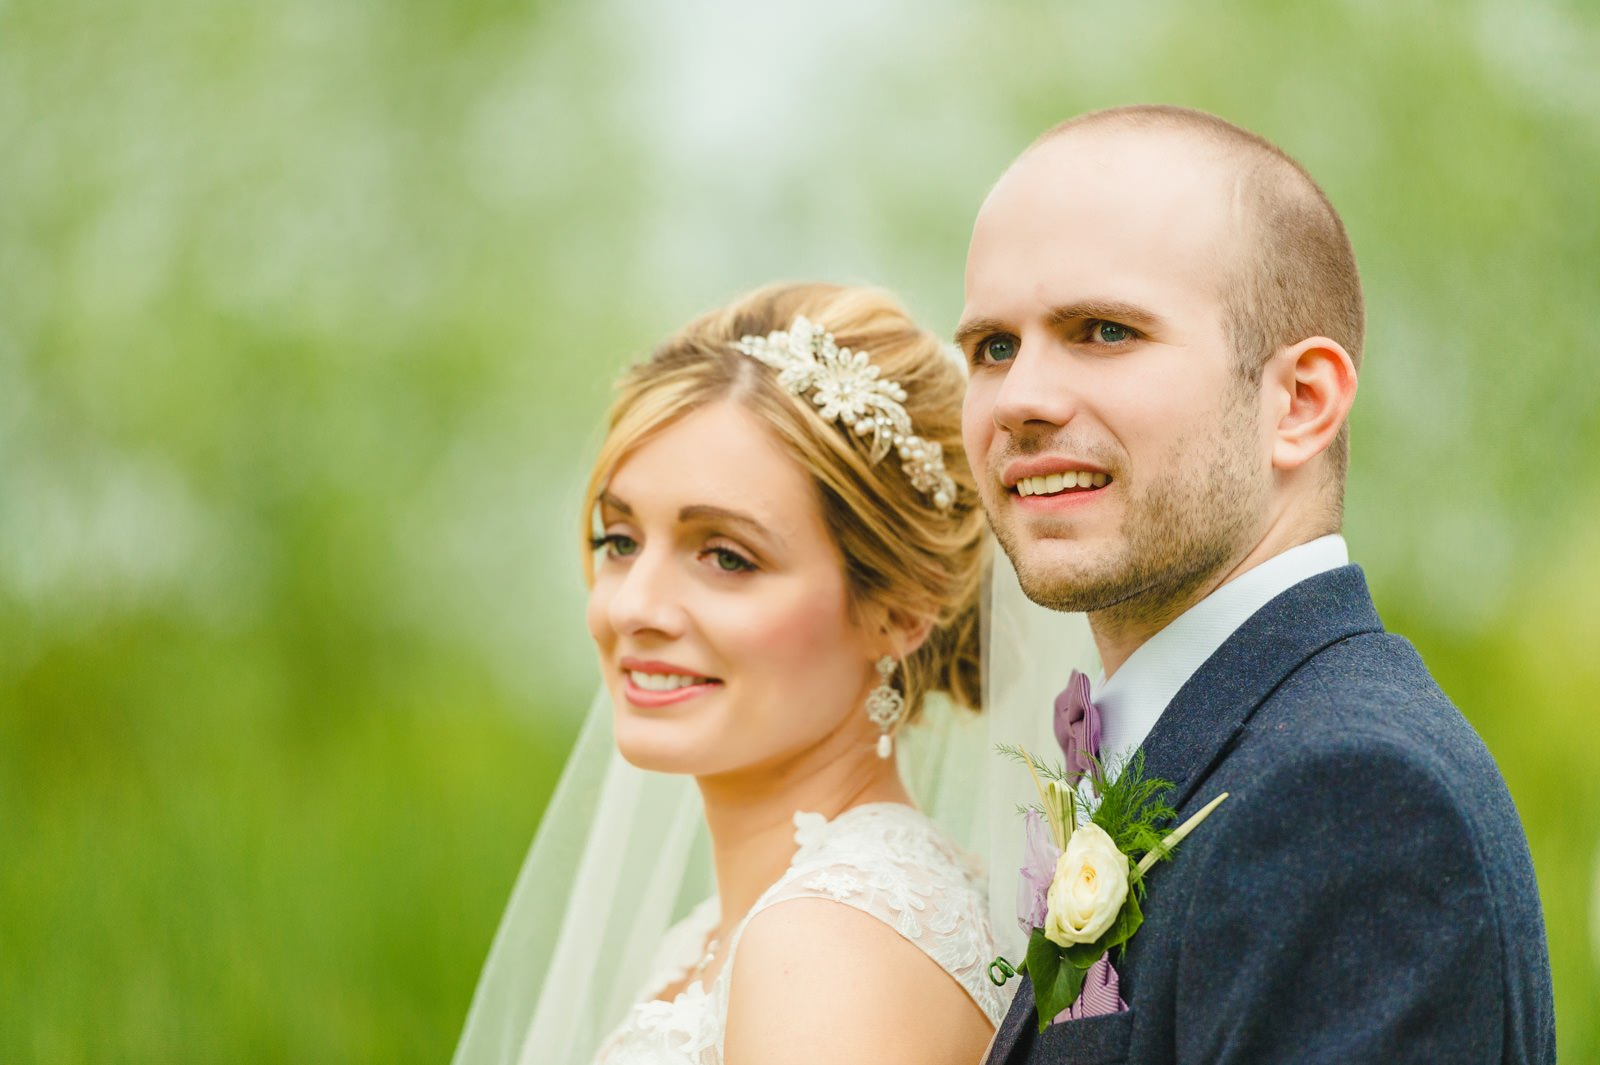 Millers Of Netley wedding, Dorrington, Shrewsbury | Emma + Ben 66